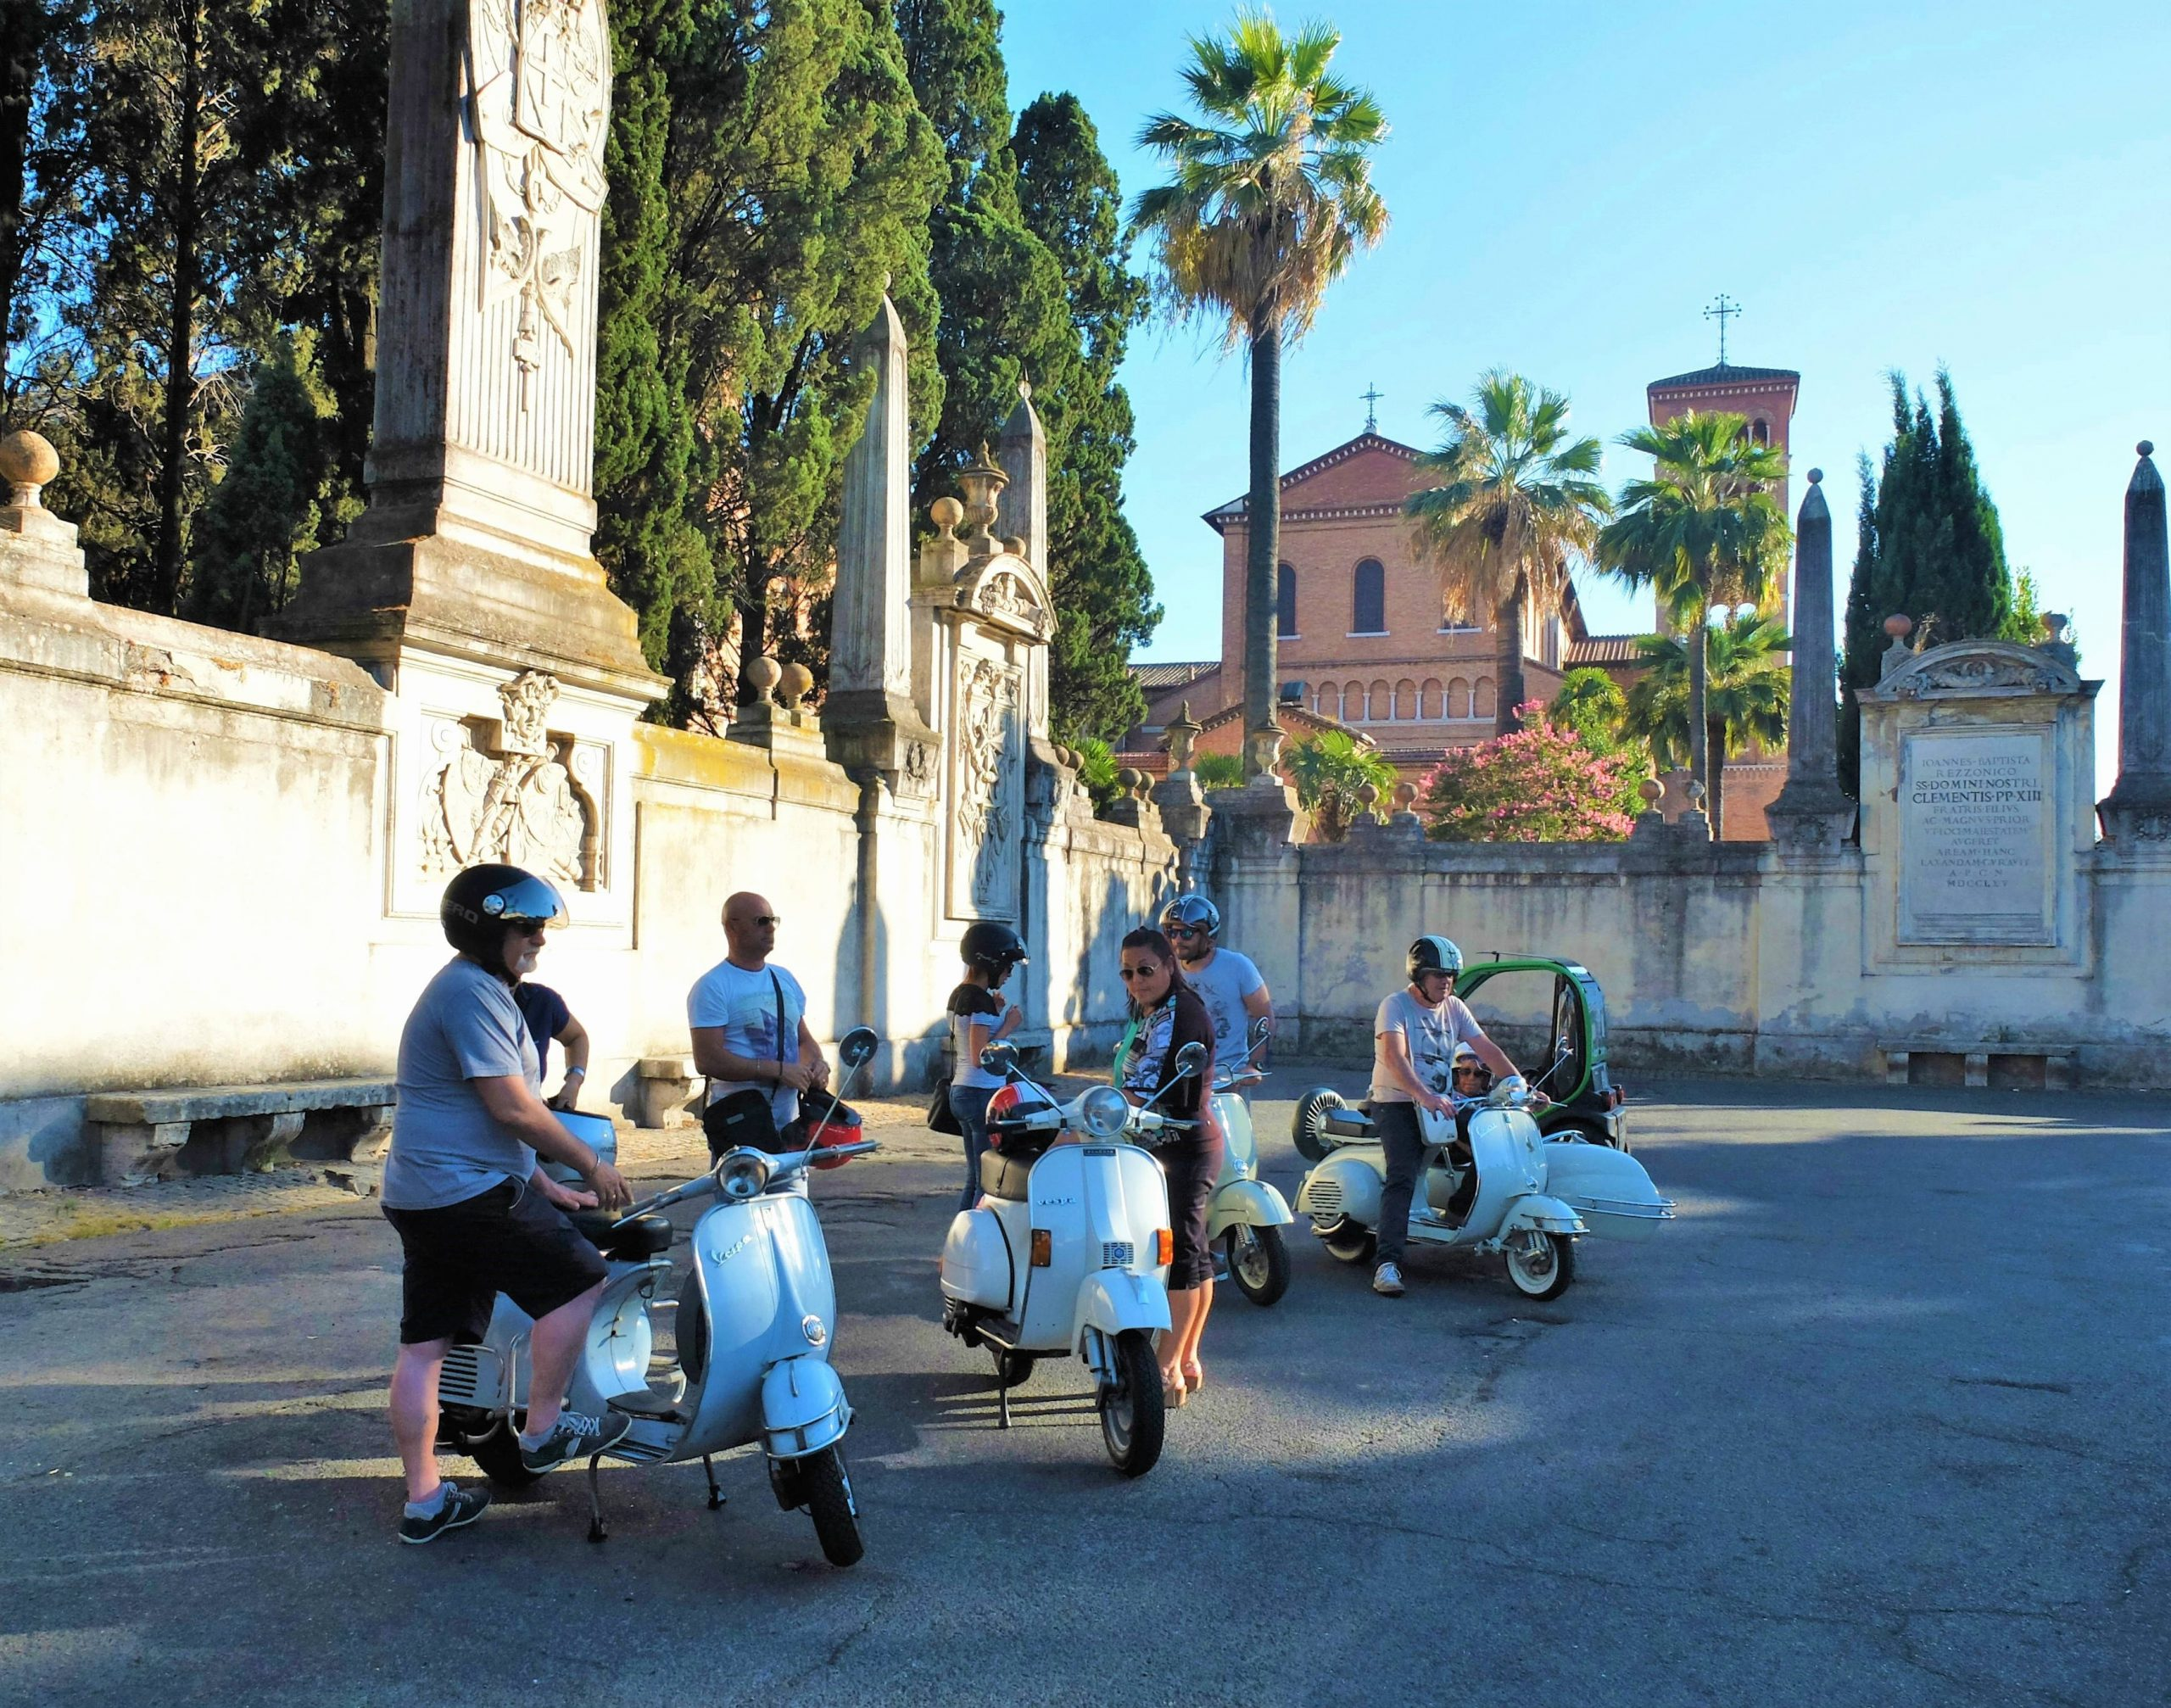 Things to do in Rome: 15 Instagram images of Rome, Italy from blogger Testaccina to inspire you to visit Rome in 2017. The best Instagram posts of Rome.